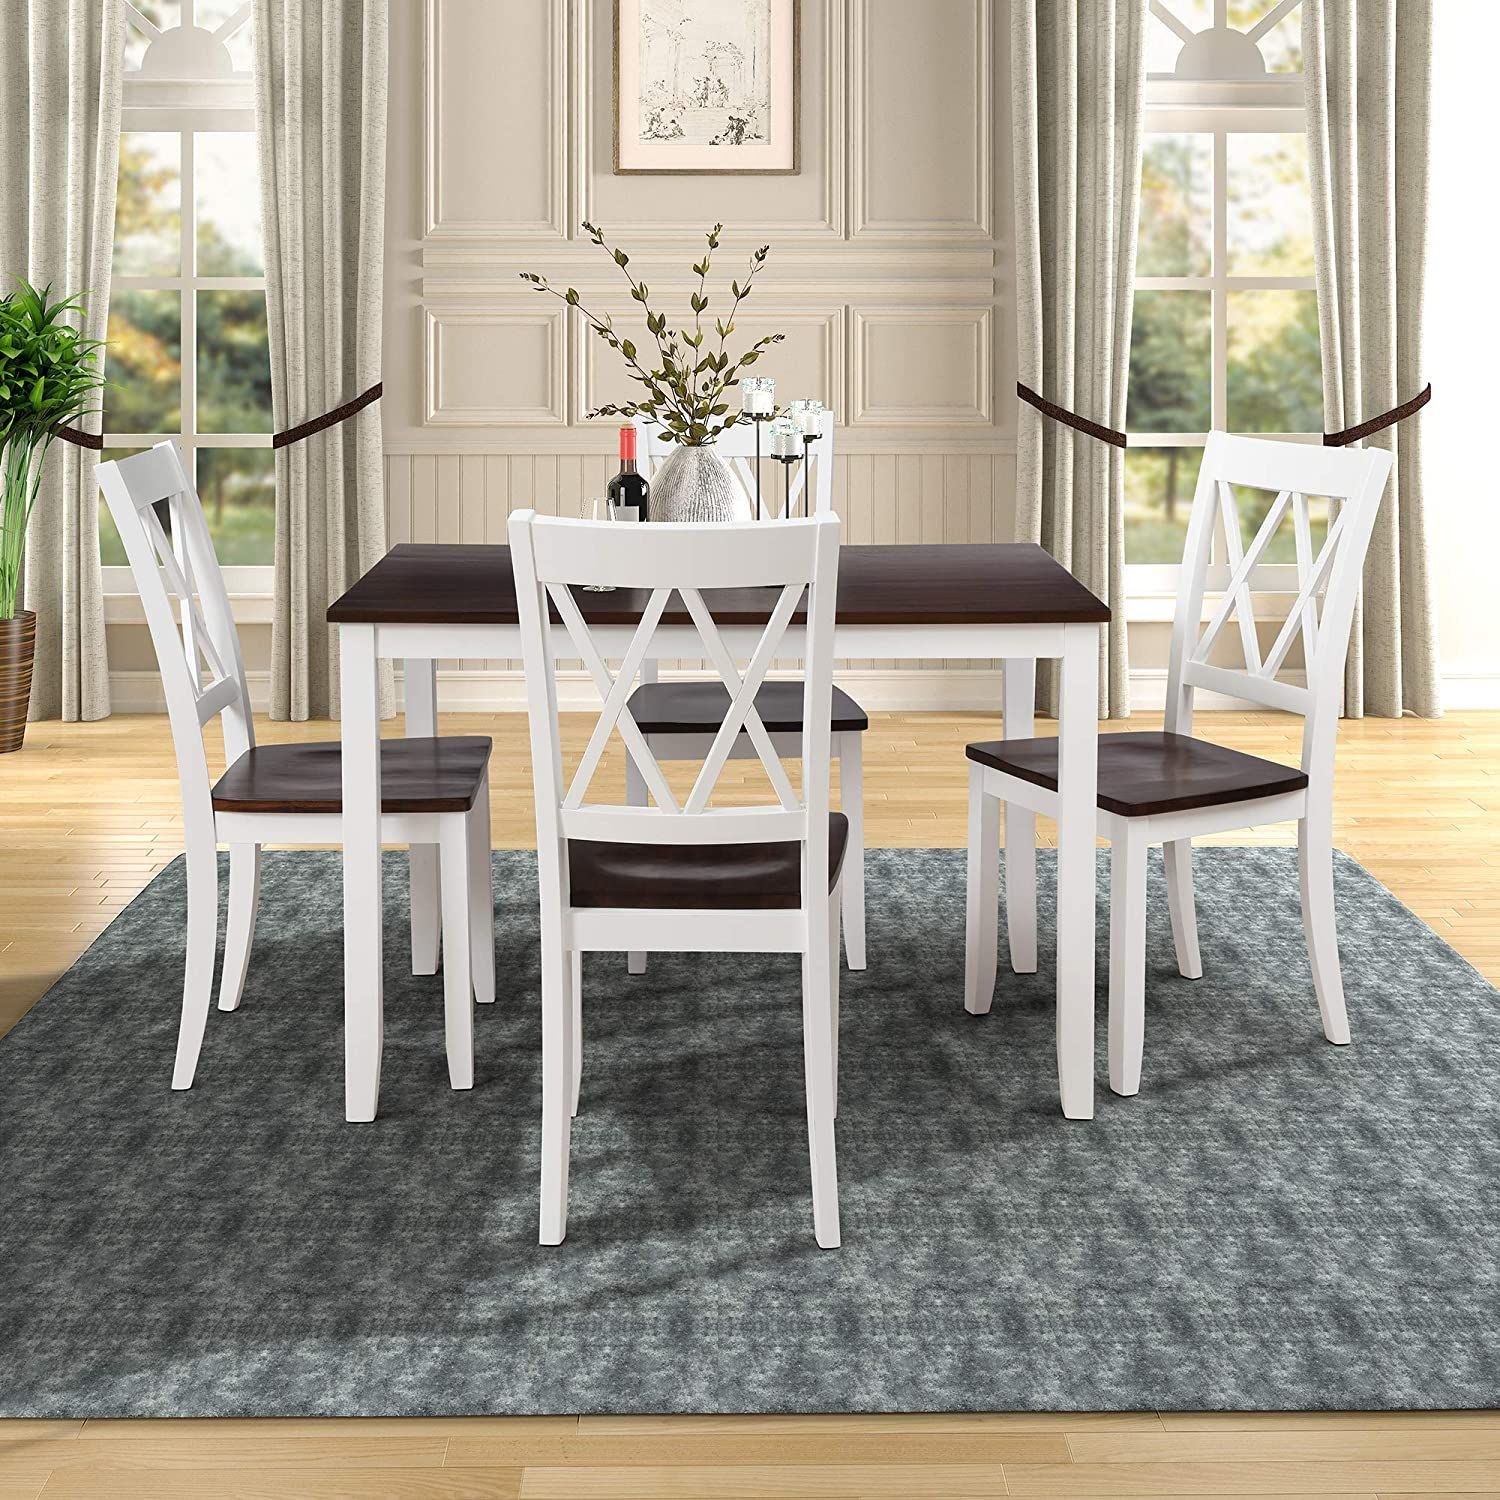 29+ Grey small dining table and chairs Tips